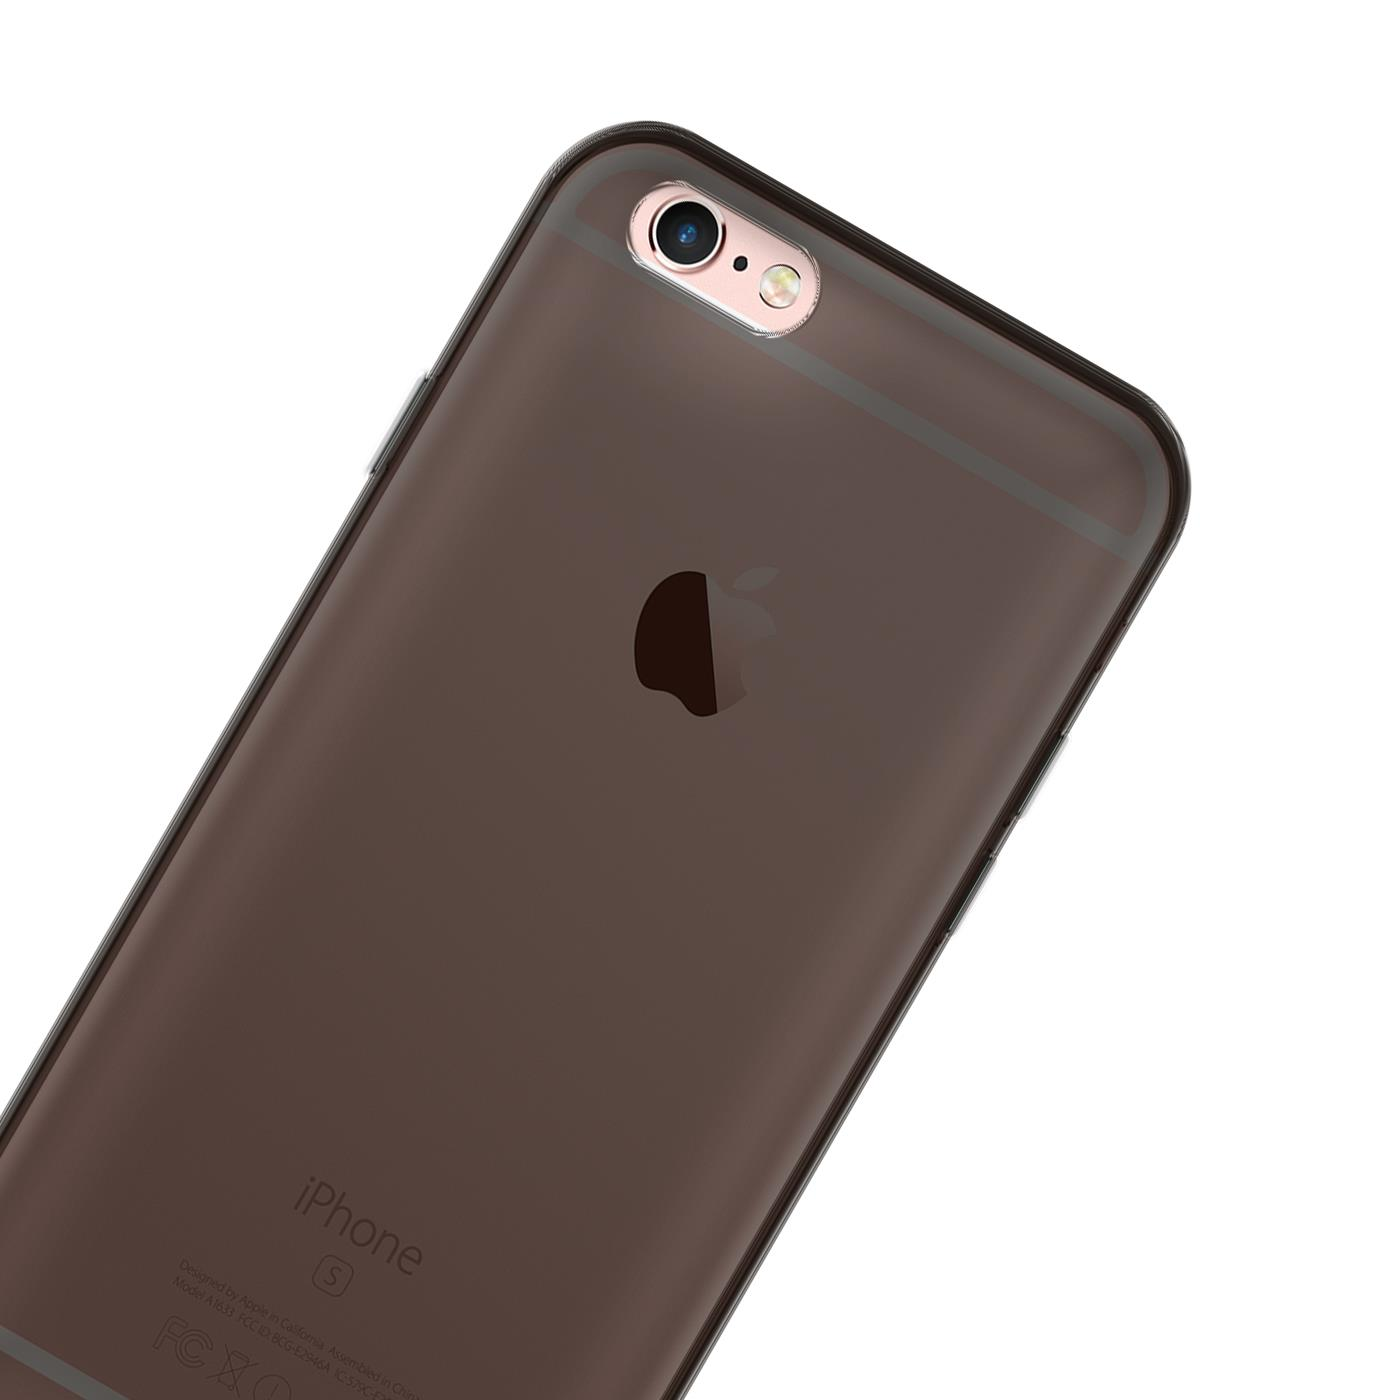 Handy-Huelle-Silikon-Case-Schutz-Tasche-Duenn-Slim-Cover-fuer-Apple-iPhone-Modelle Indexbild 34